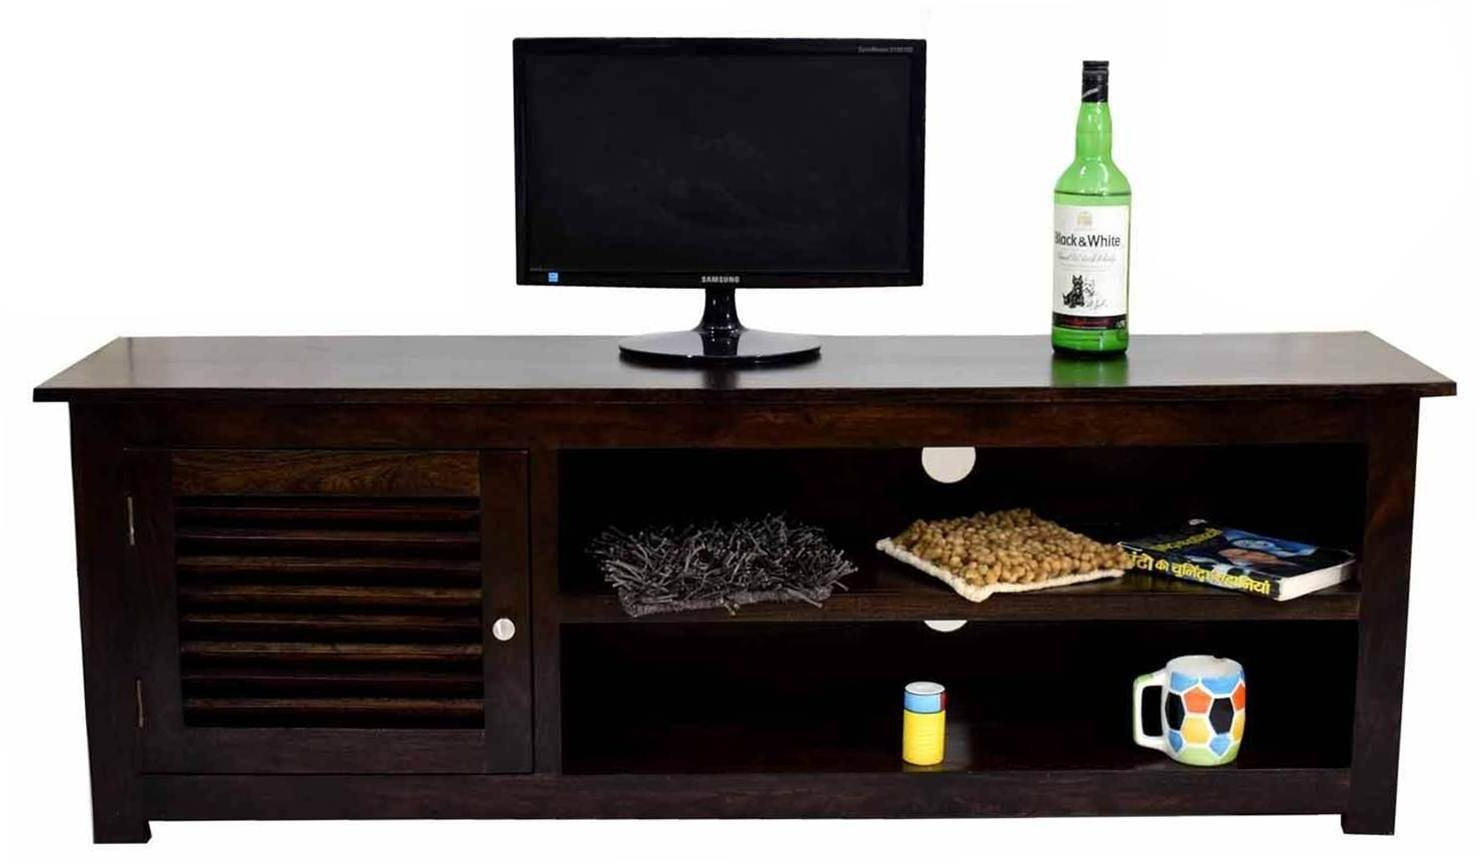 Daintree Dyna Solid Wood Tv Entertainment Unit (Dark Walnut Finish Intended For Favorite Daintree Tv Stands (Gallery 7 of 20)